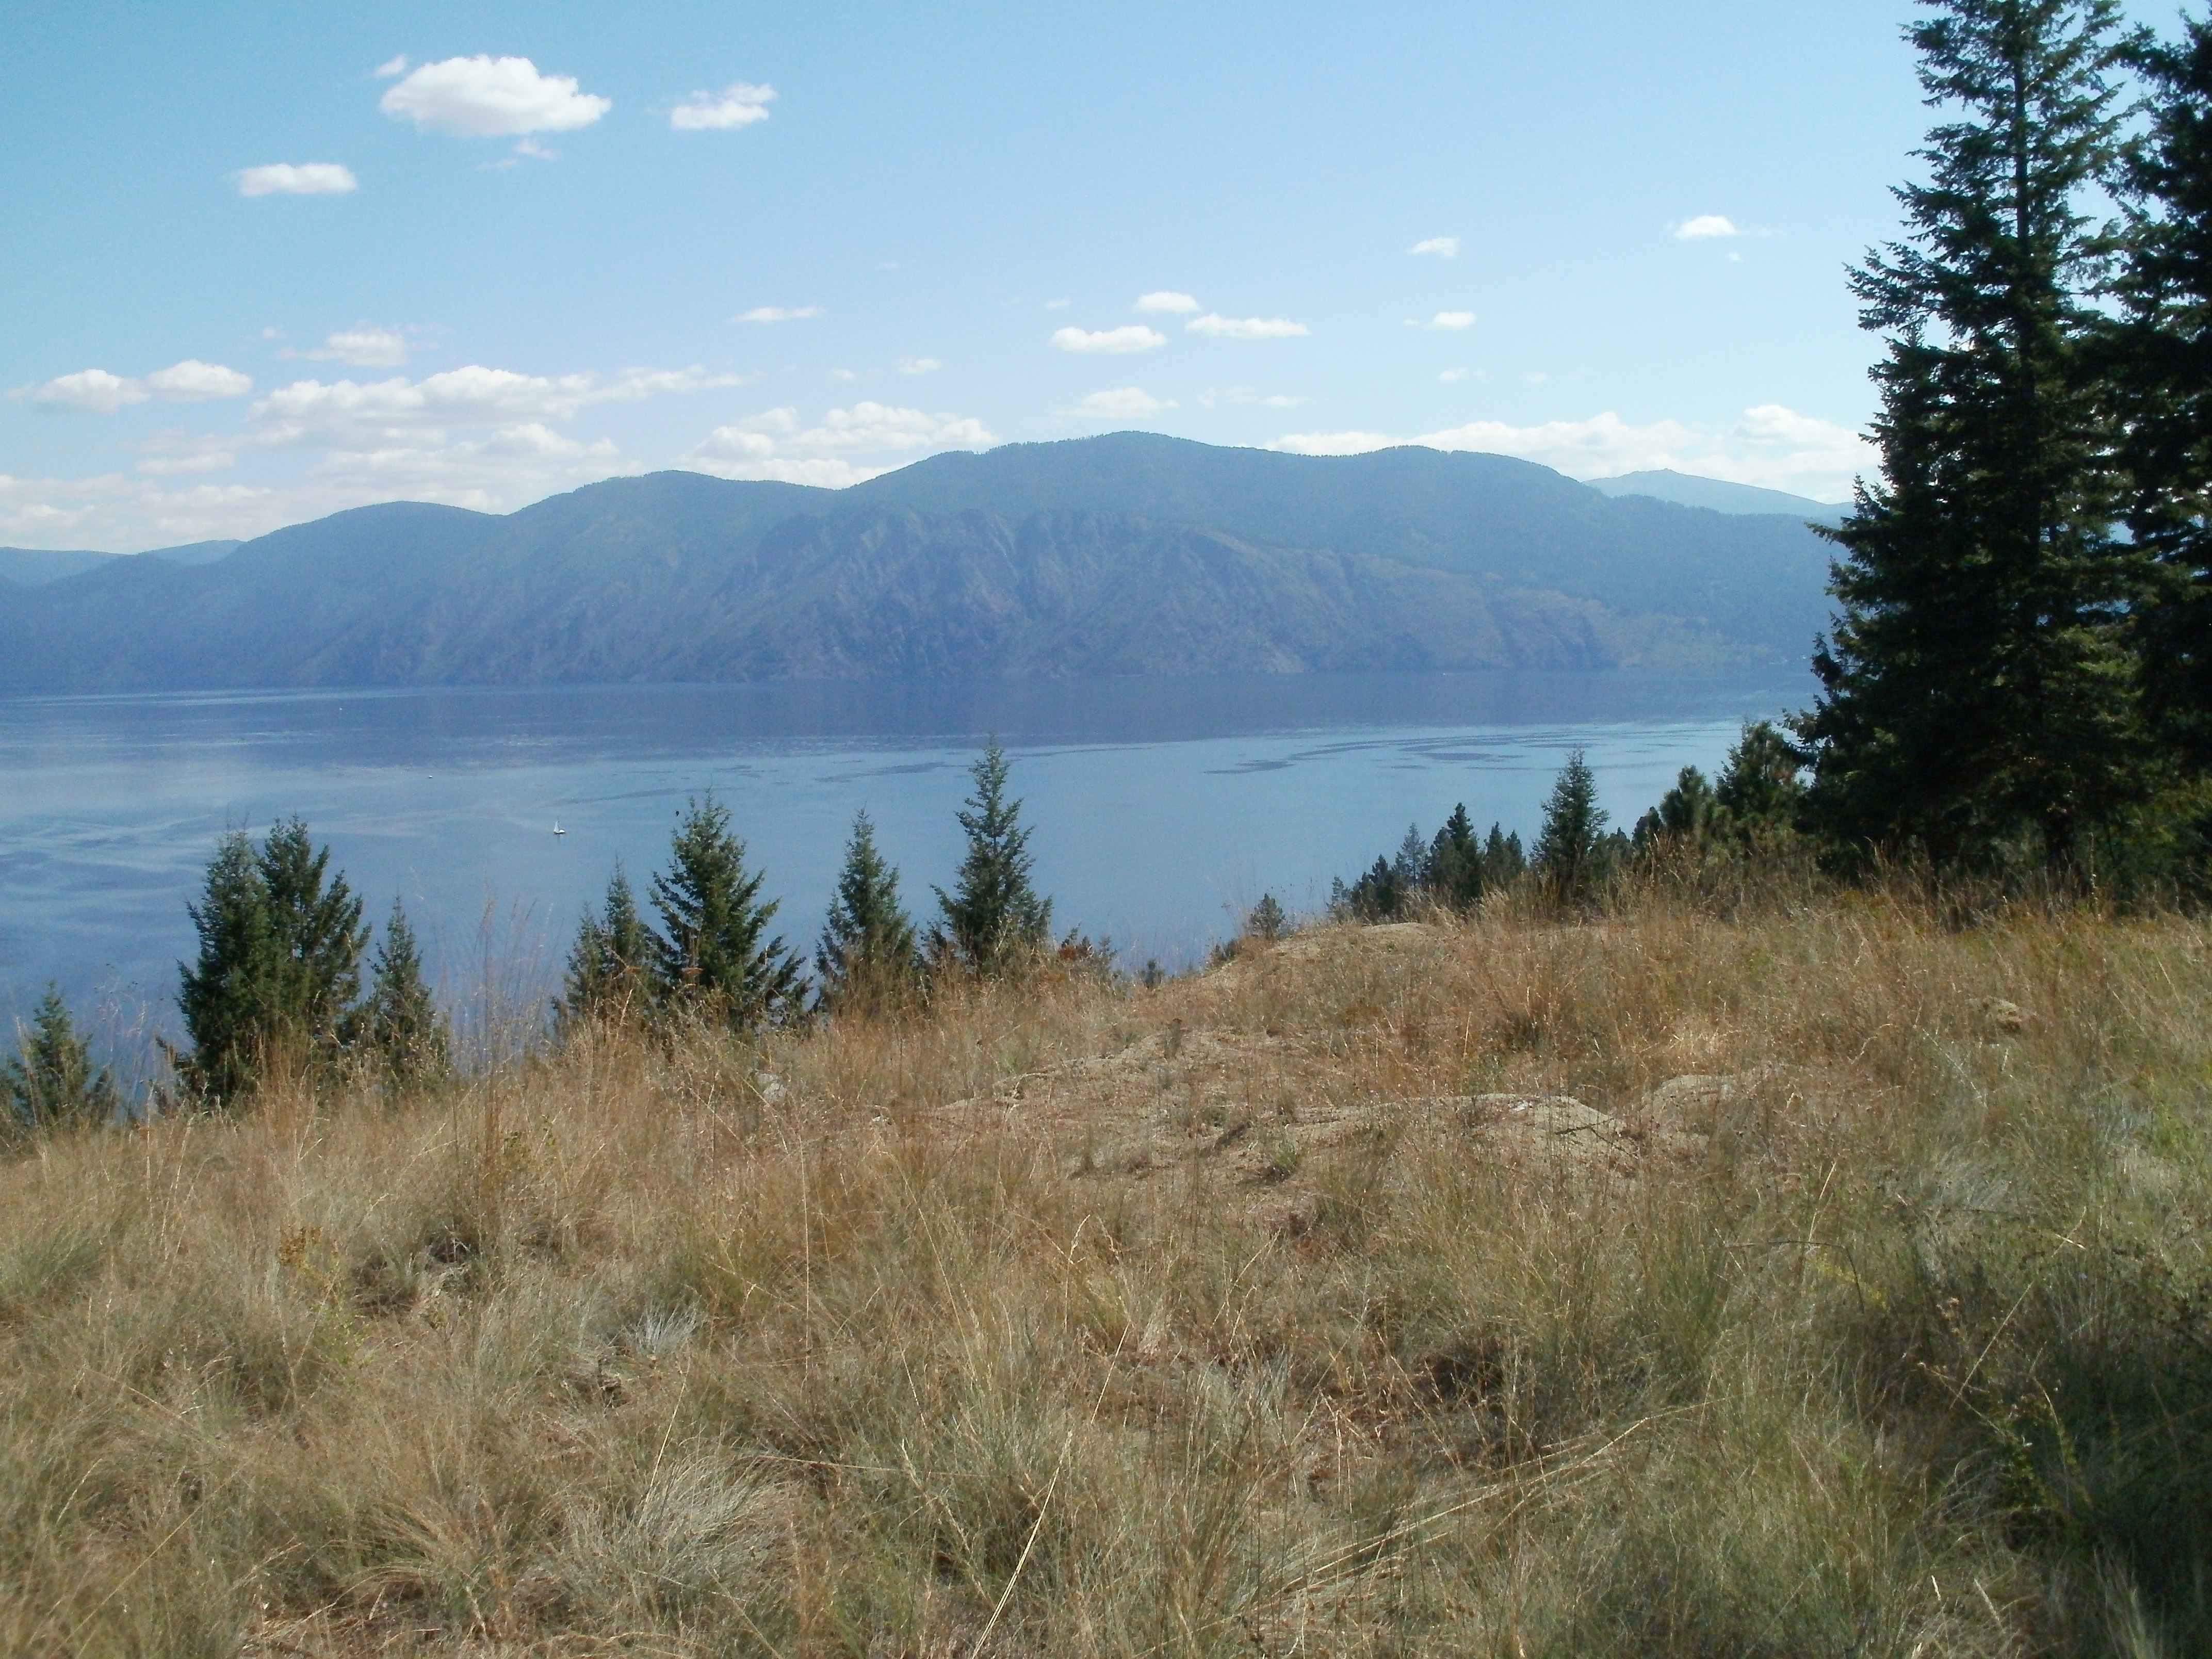 Property For Sale at Lake Pend Oreille View Property